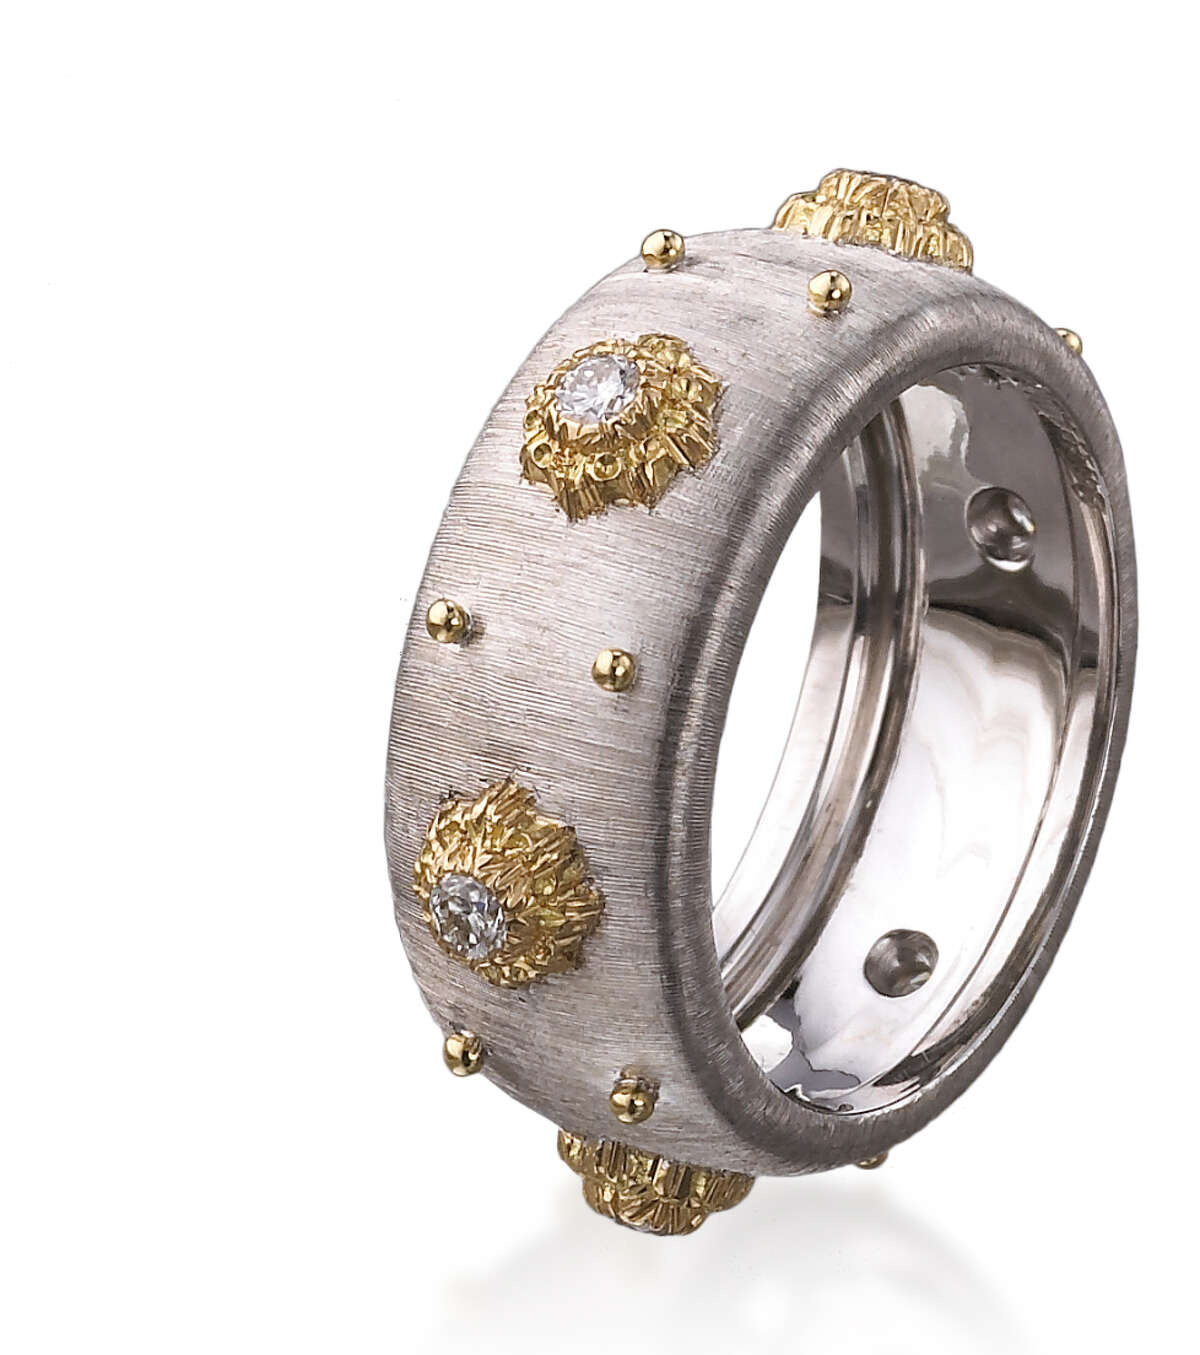 The Italian luxury jewelry house of Buccellati has opened a boutique within Gump's, bringing a selection of distinctive looks to Bay Area shoppers.